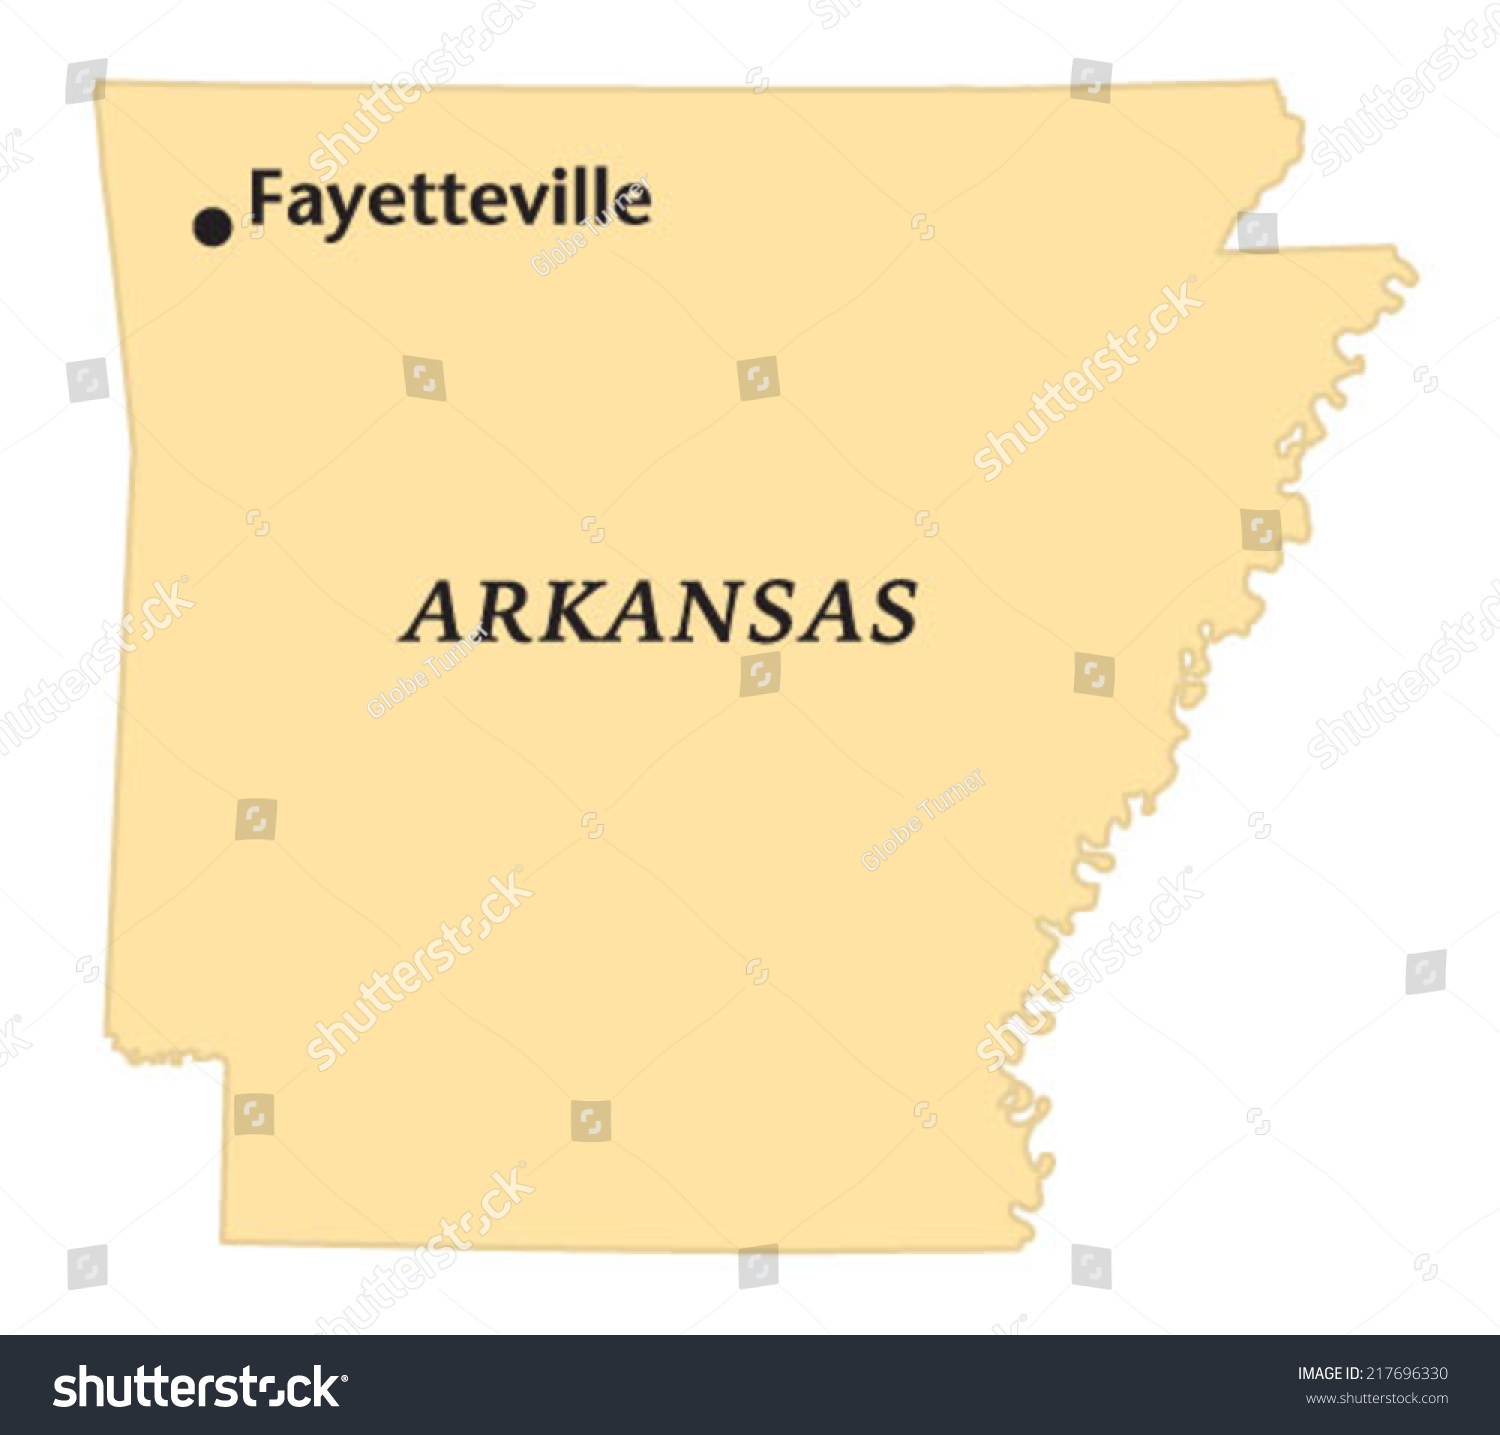 Fayetteville Arkansas Locate Map Stock Vector (Royalty Free ...